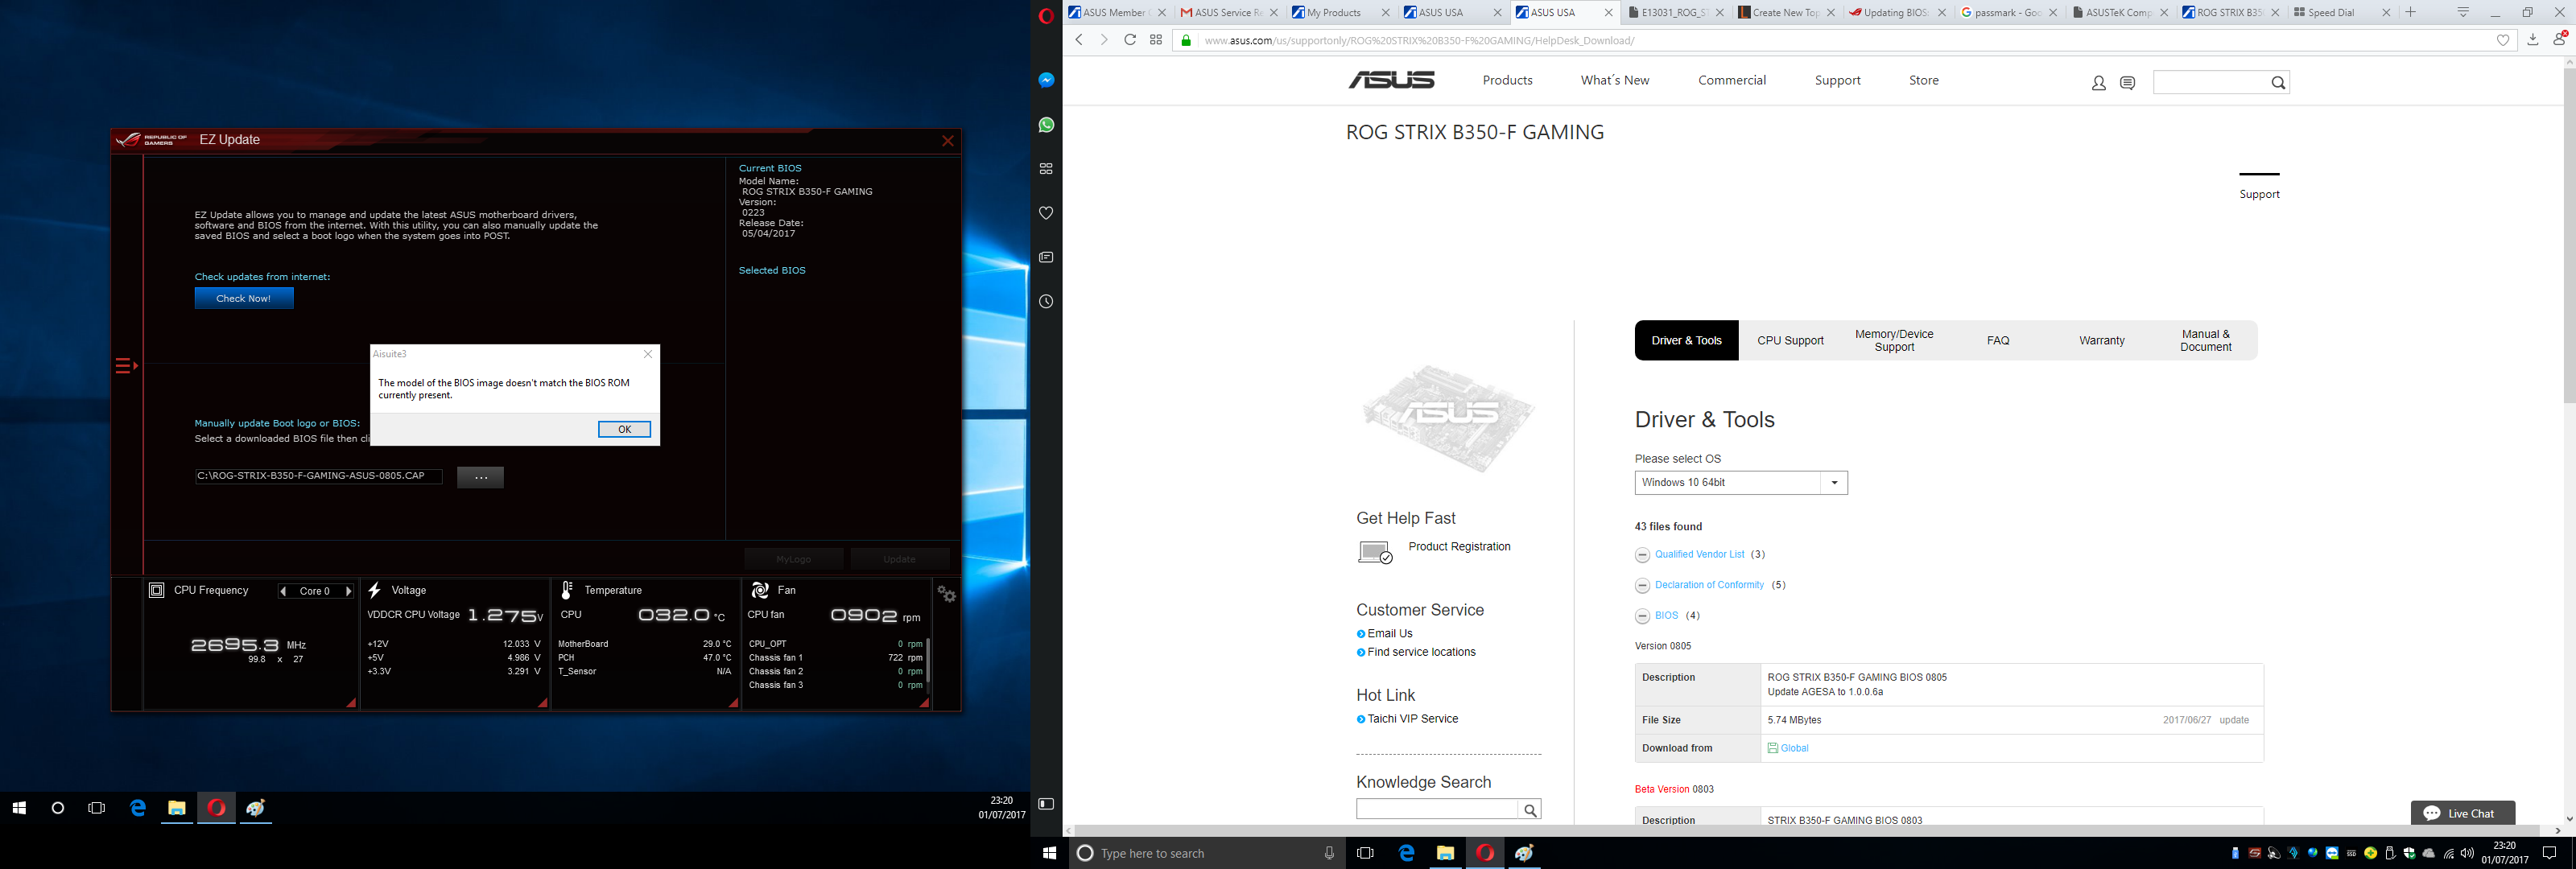 Can't update BIOS for ASUS Strix B350-F Gaming - CPUs, Motherboards